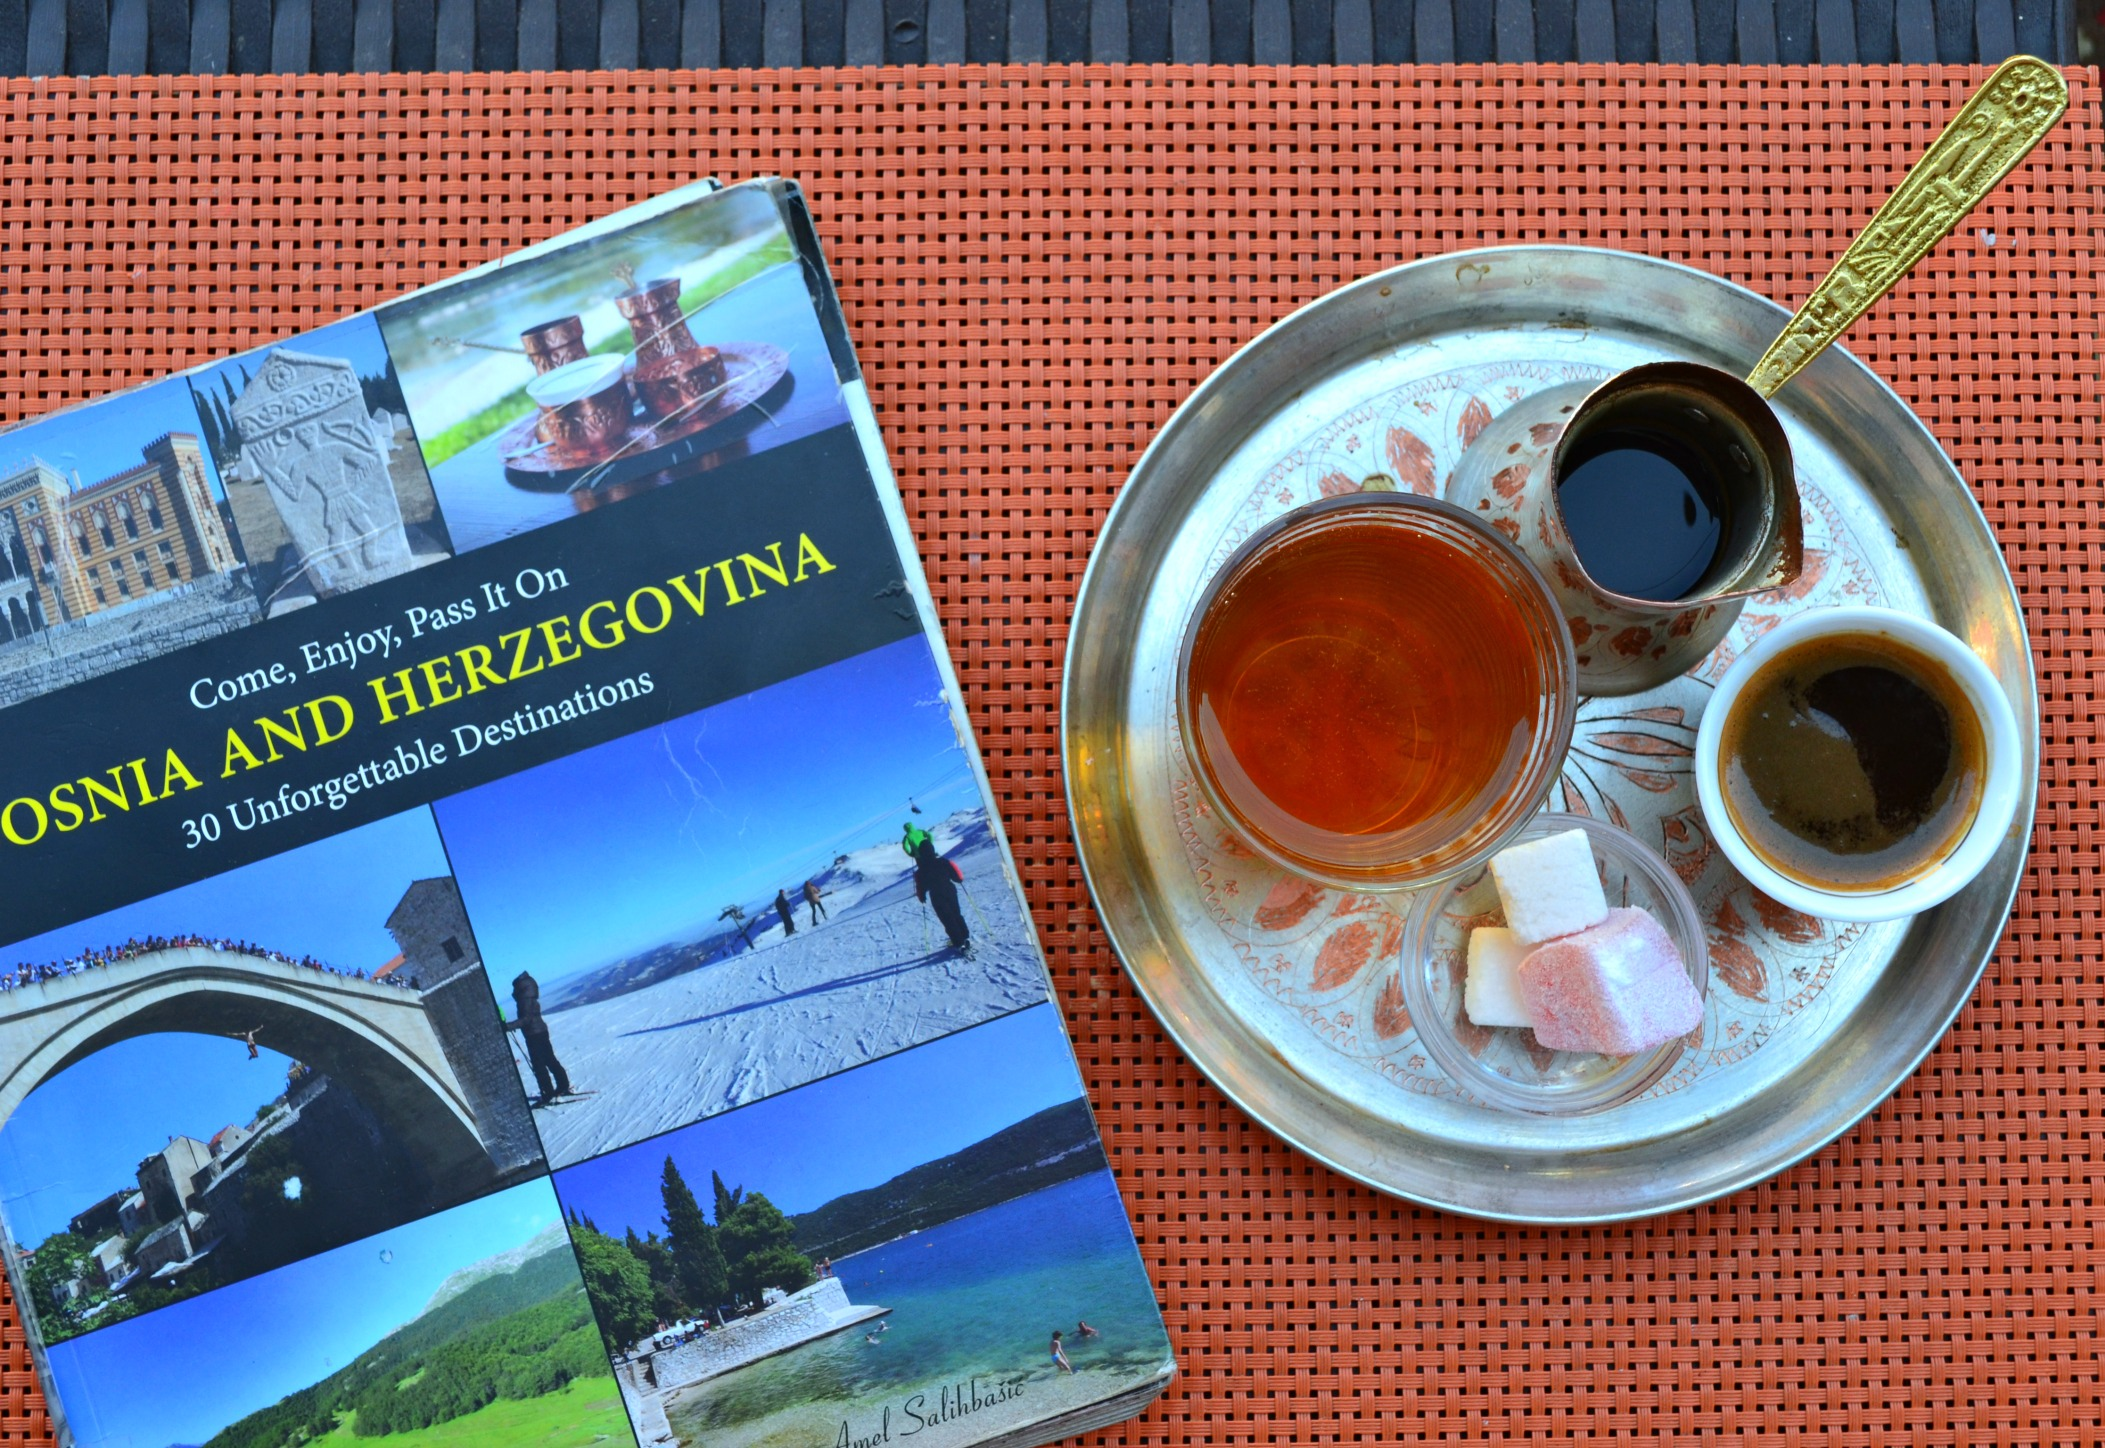 Bosnian coffee and Turksih delight